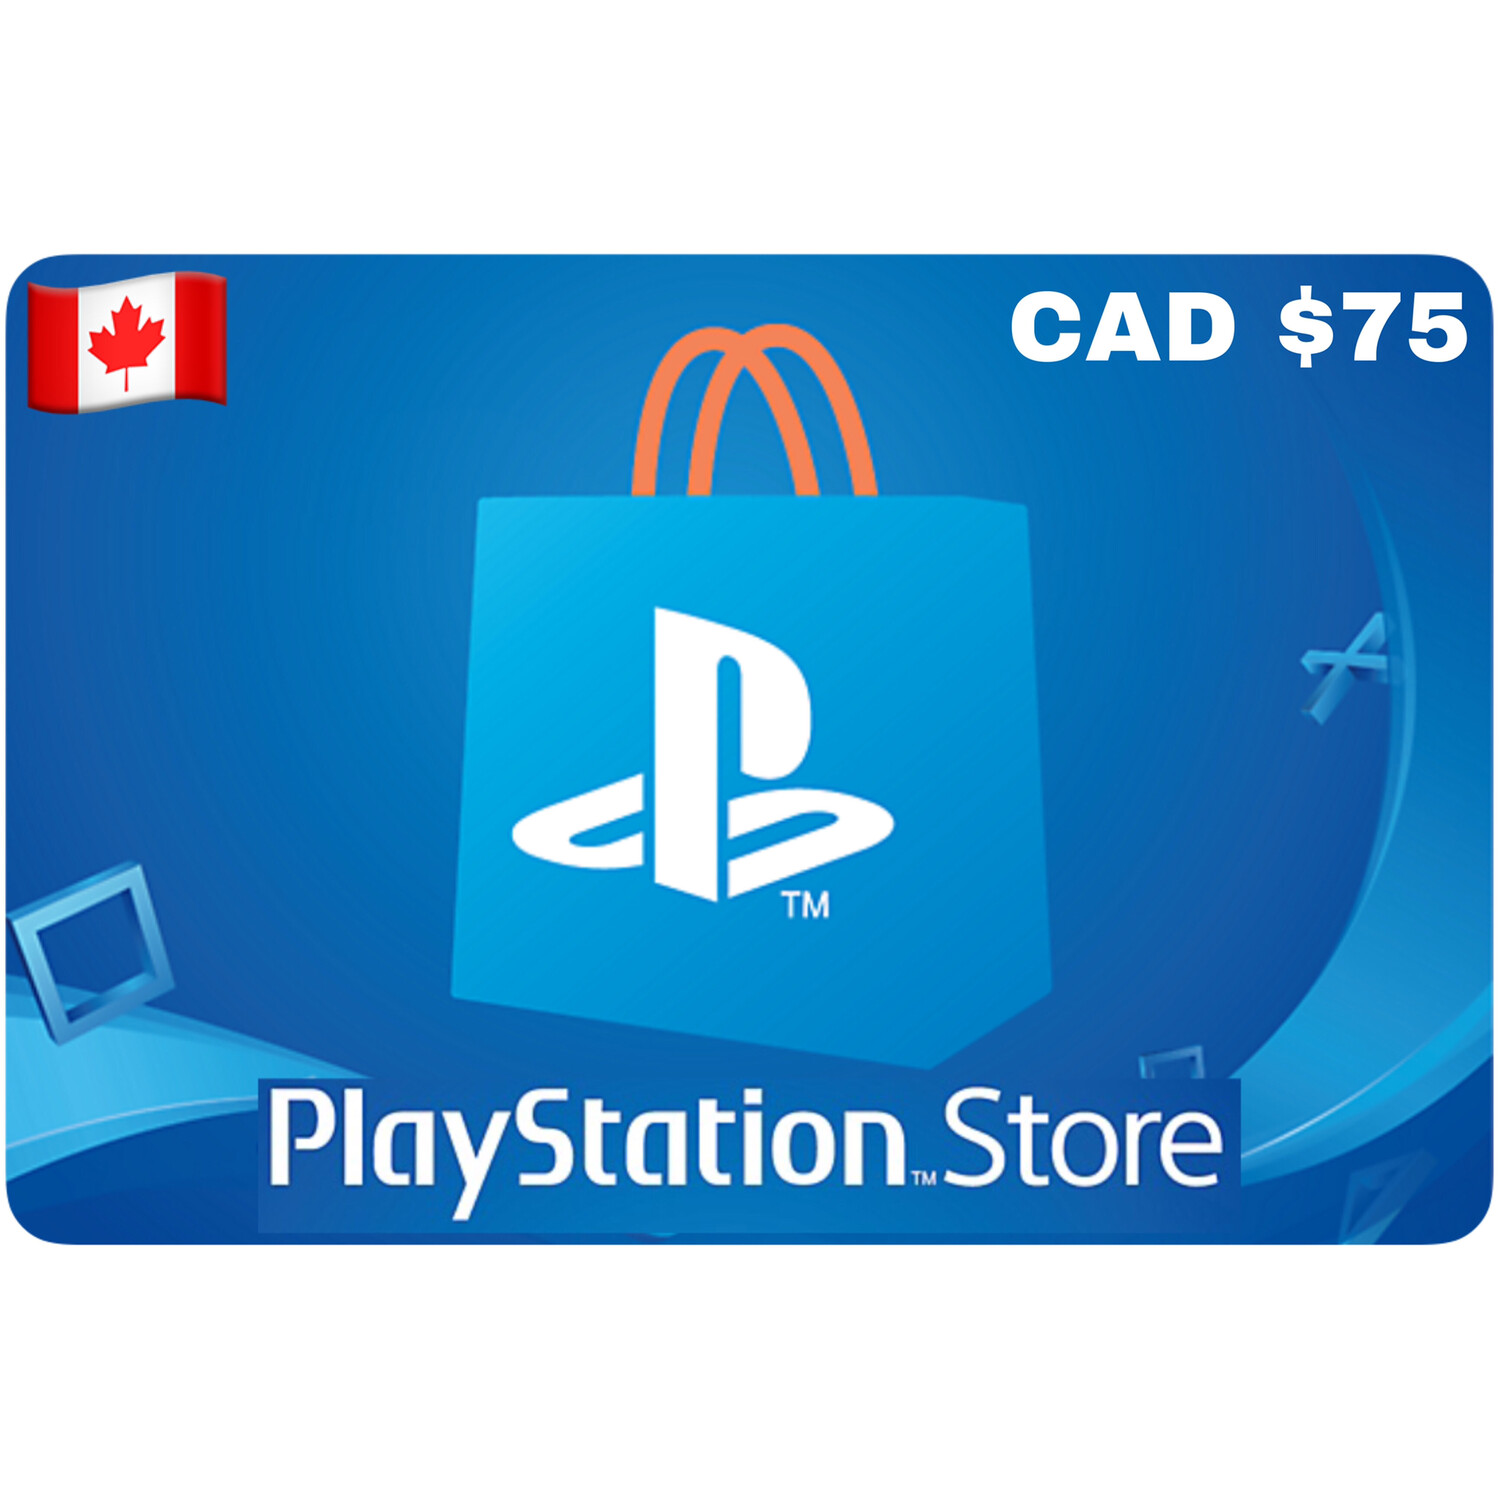 Playstation Store Gift Card Canada $75